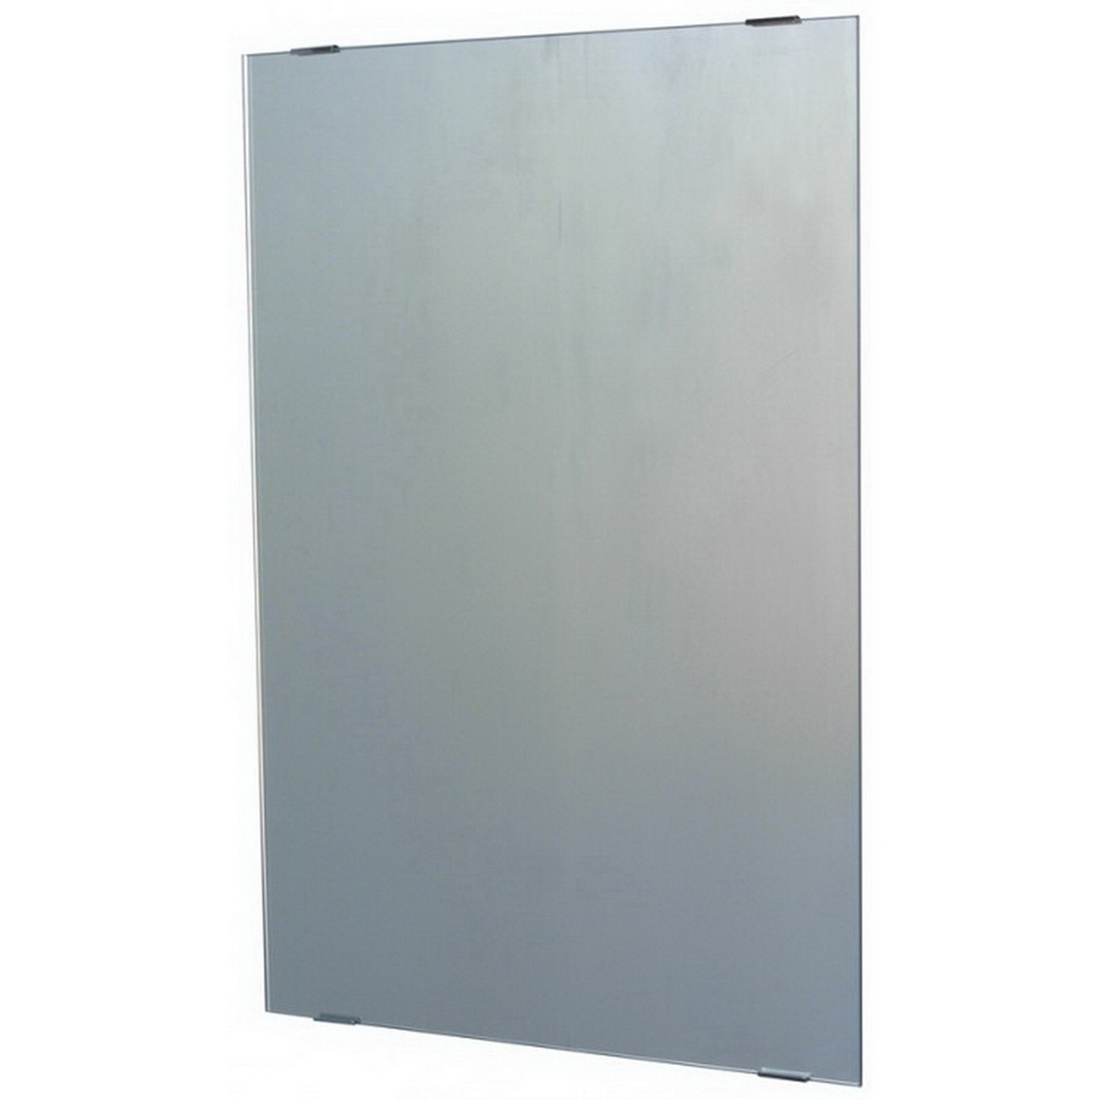 Mirrox Polished Edge Mirror with Clips 1200 x 1000mm 4839PEMCLIPS